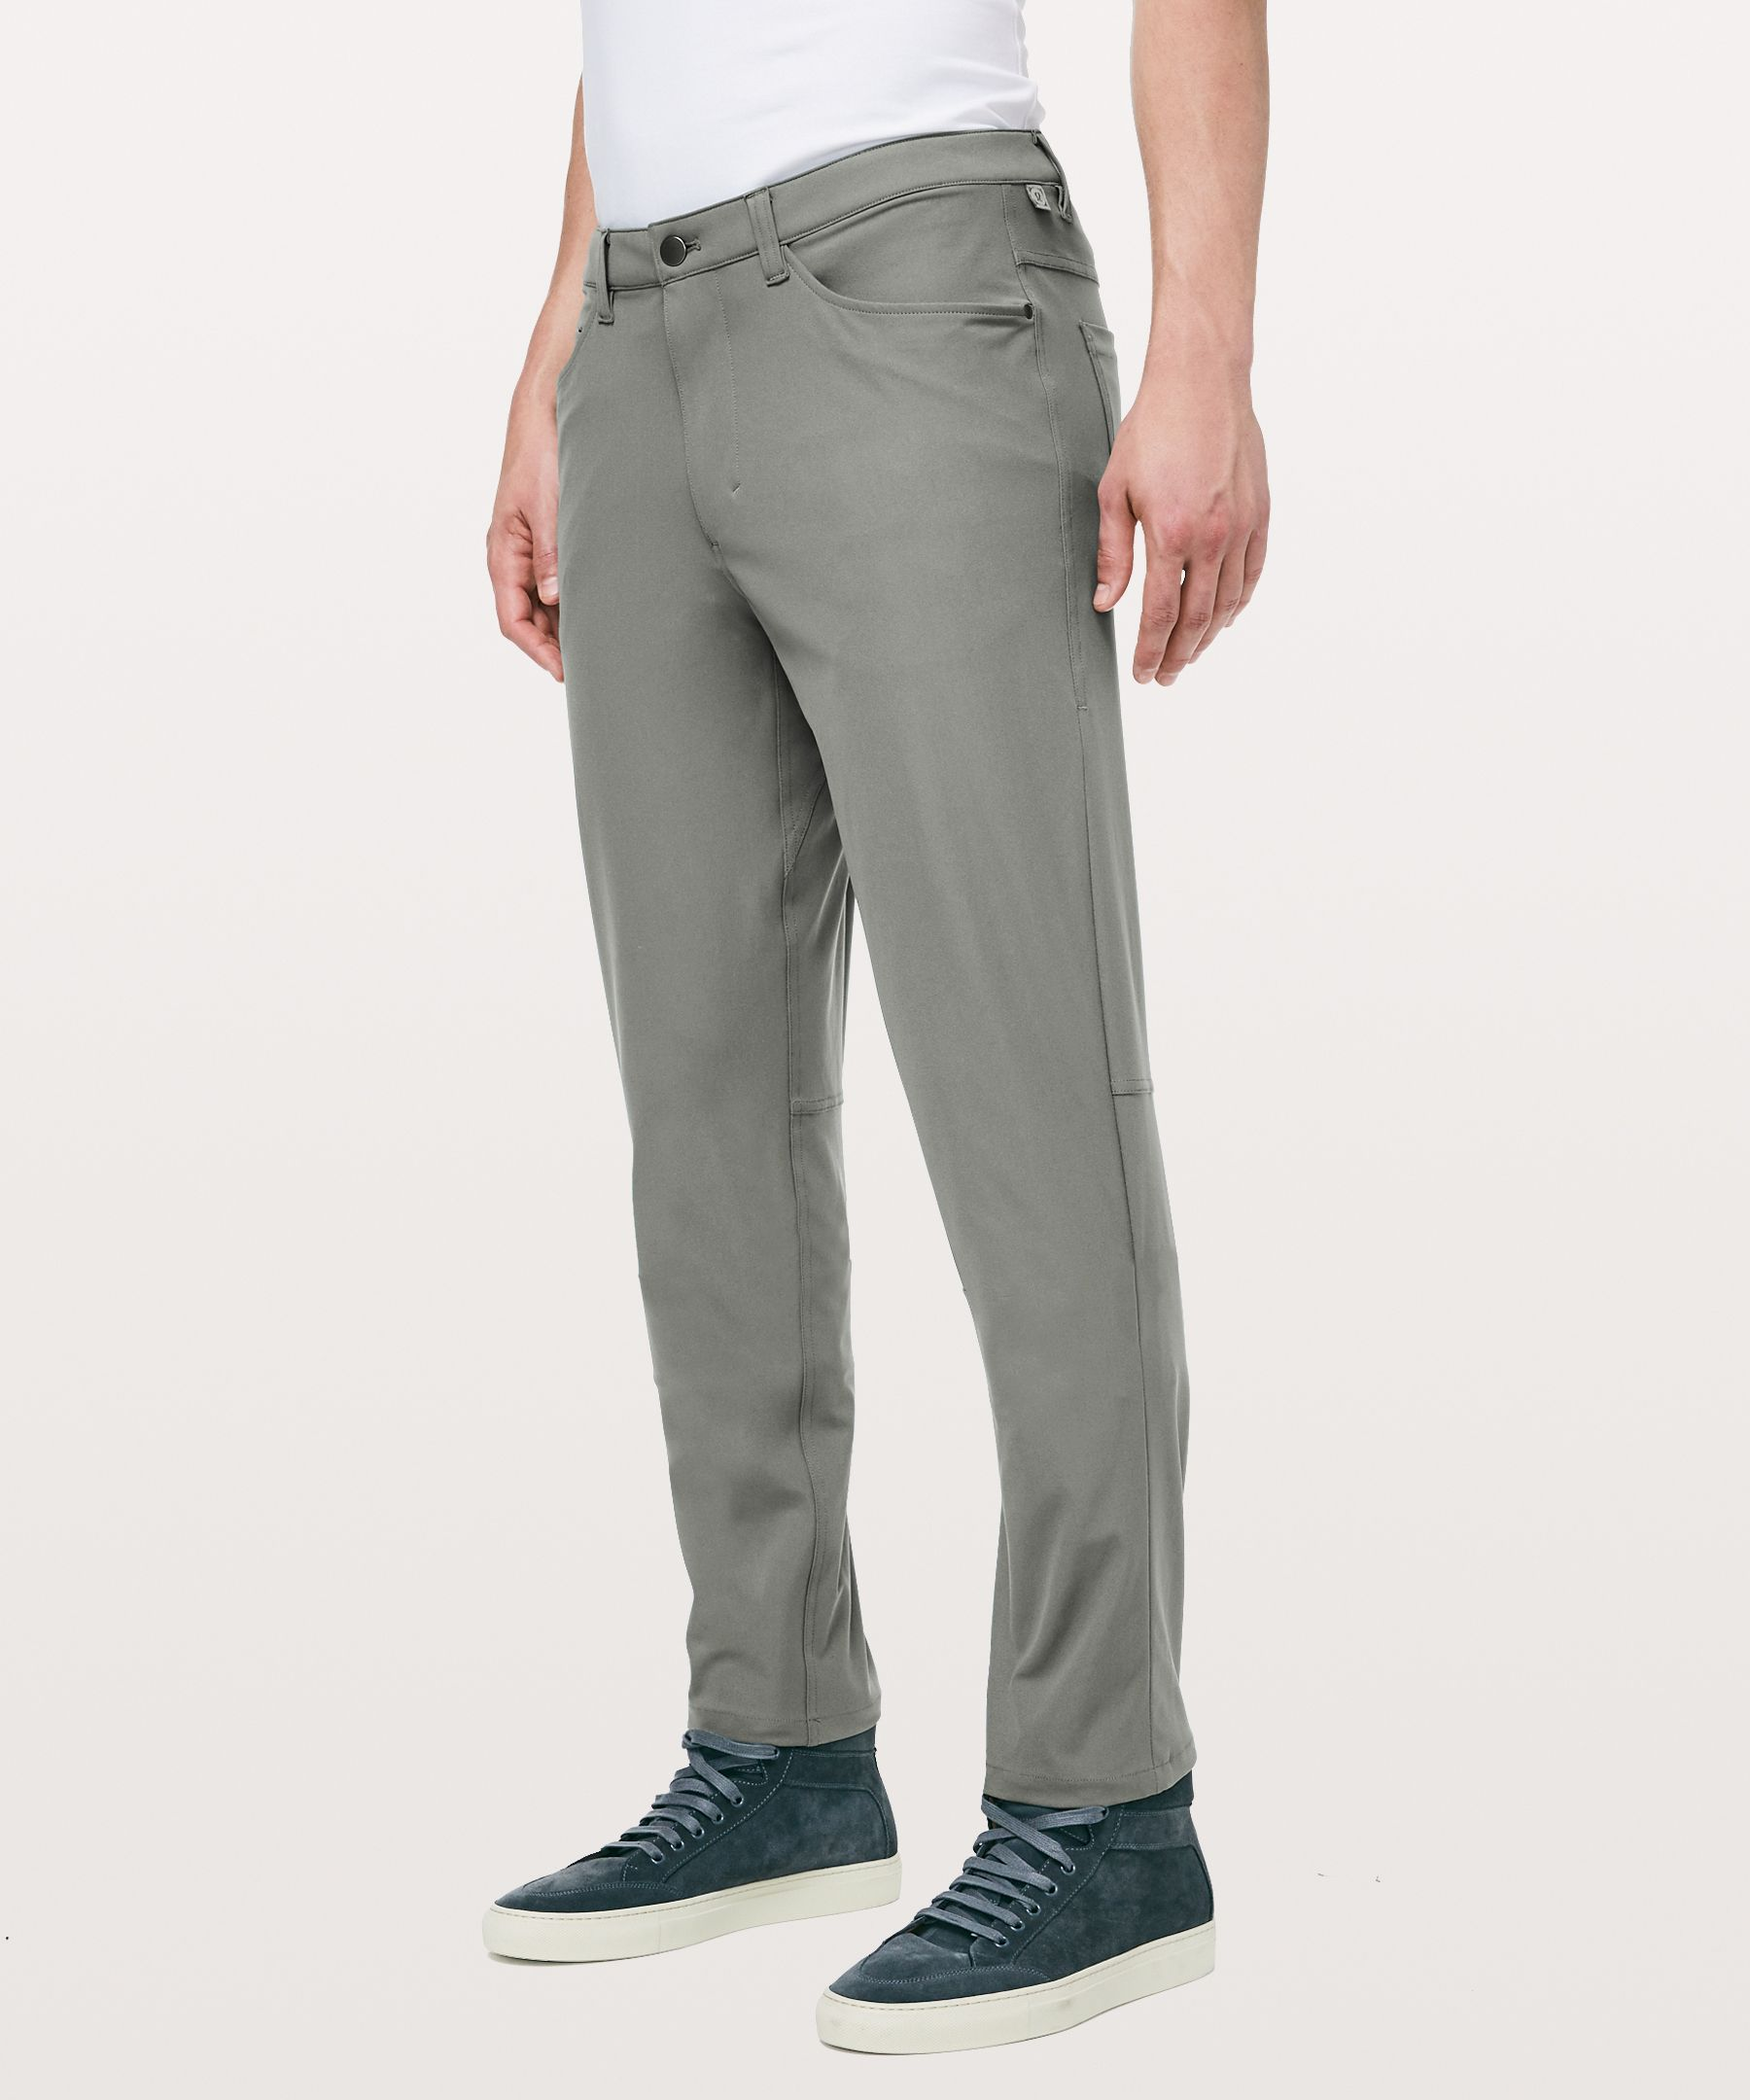 ABC Pant Classic *34"